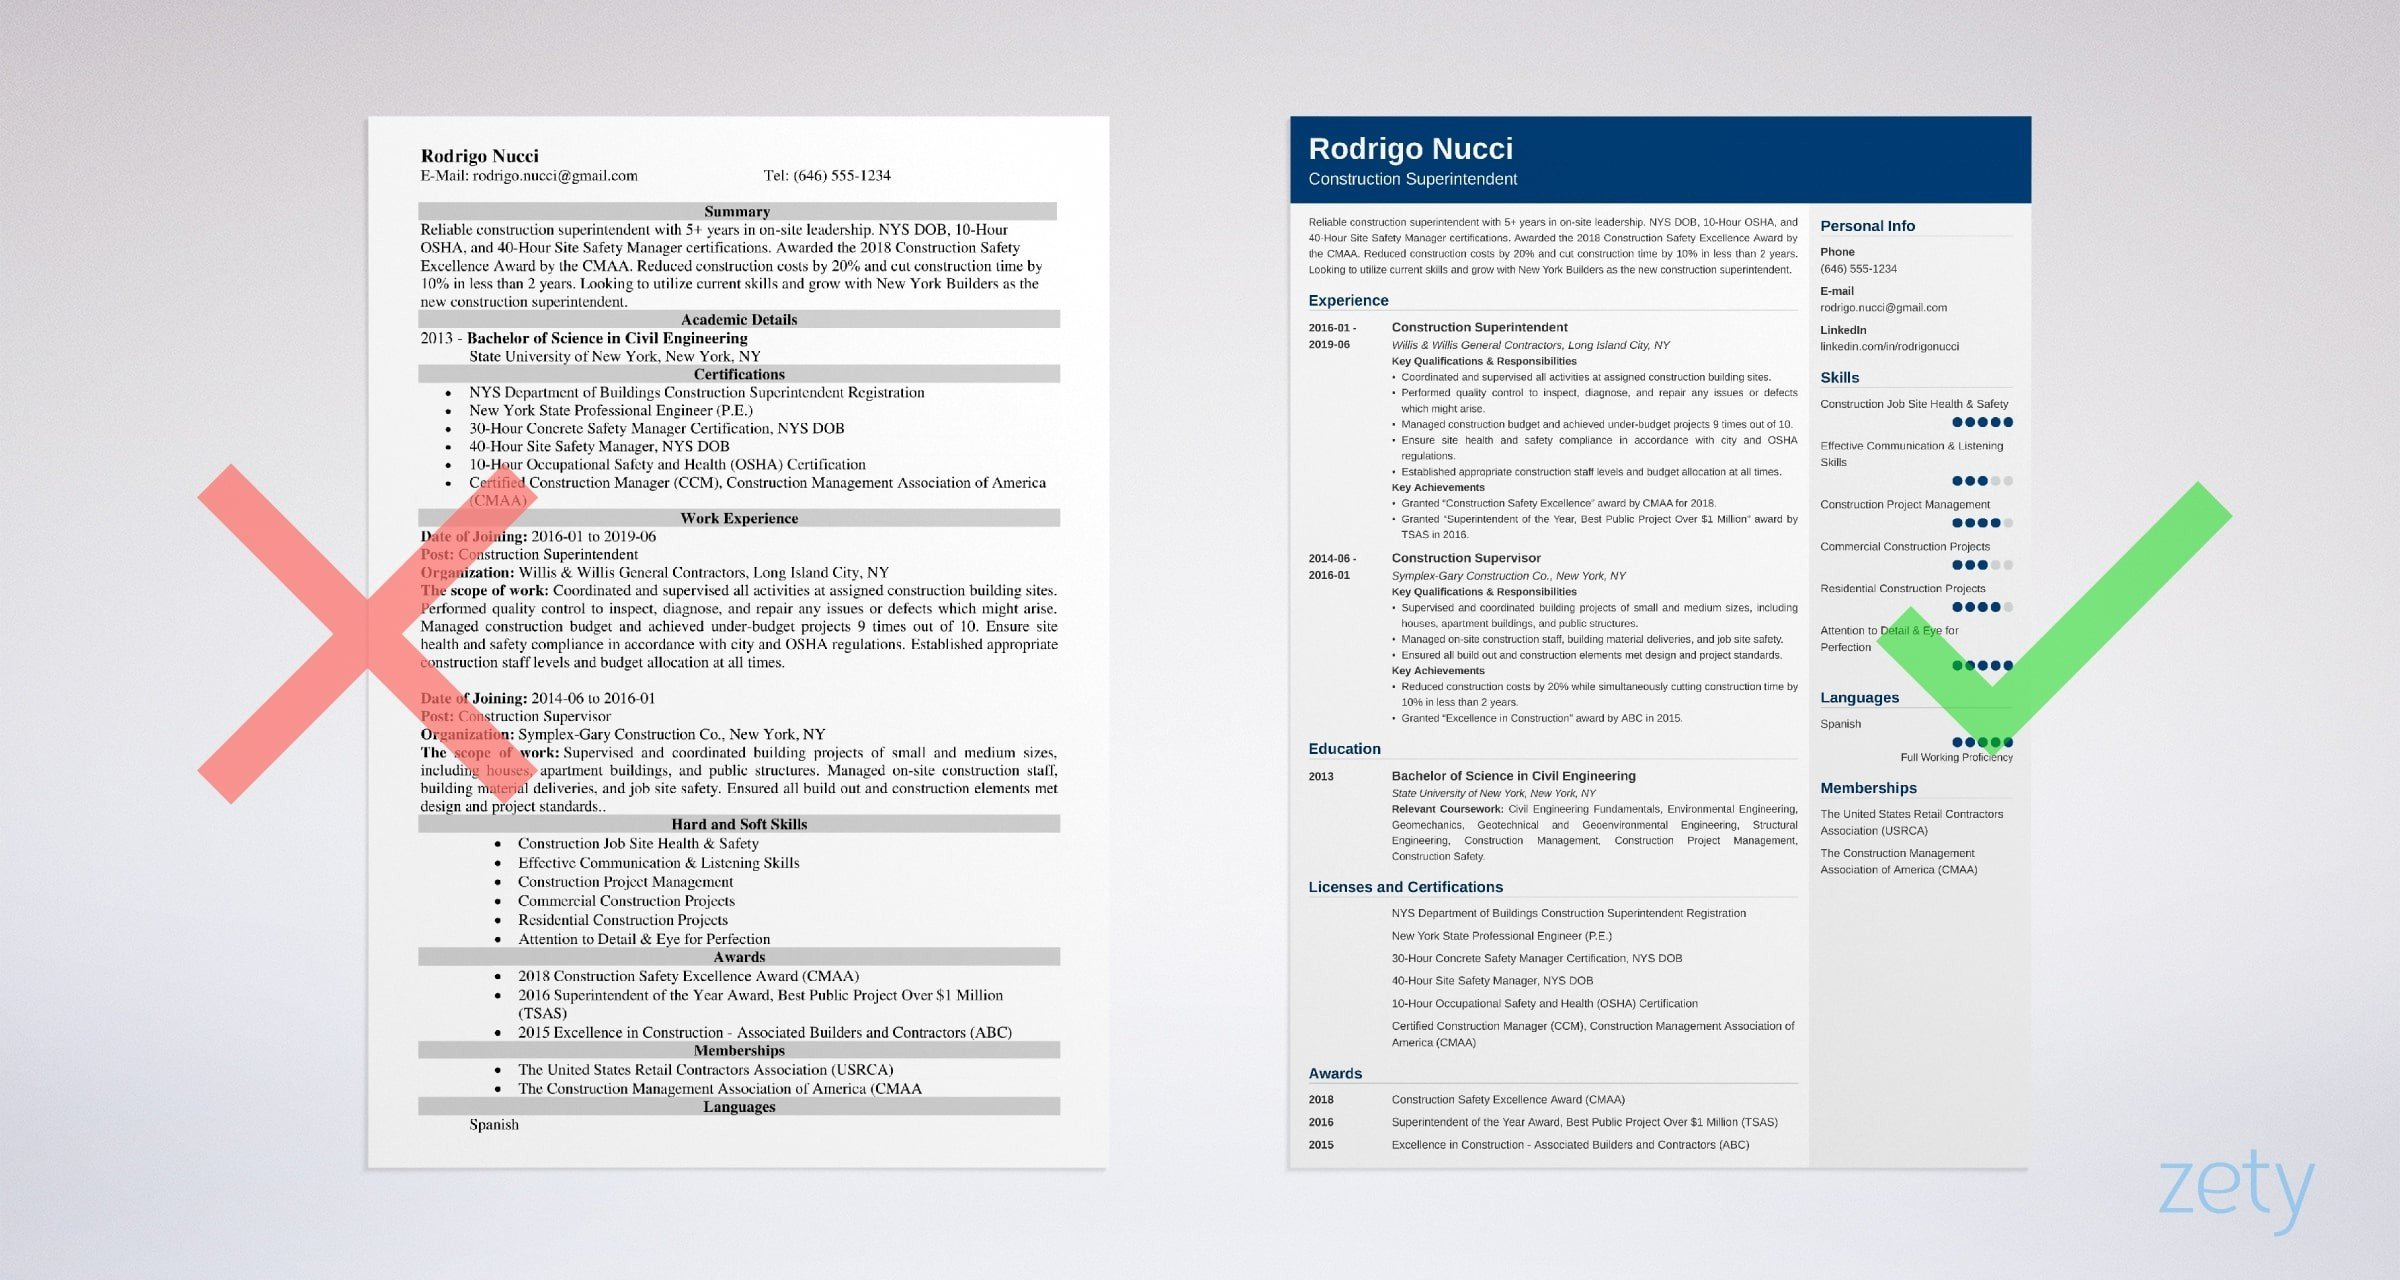 construction superintendent resume examples template and samples example biochemistry Resume Construction Superintendent Resume Examples And Samples